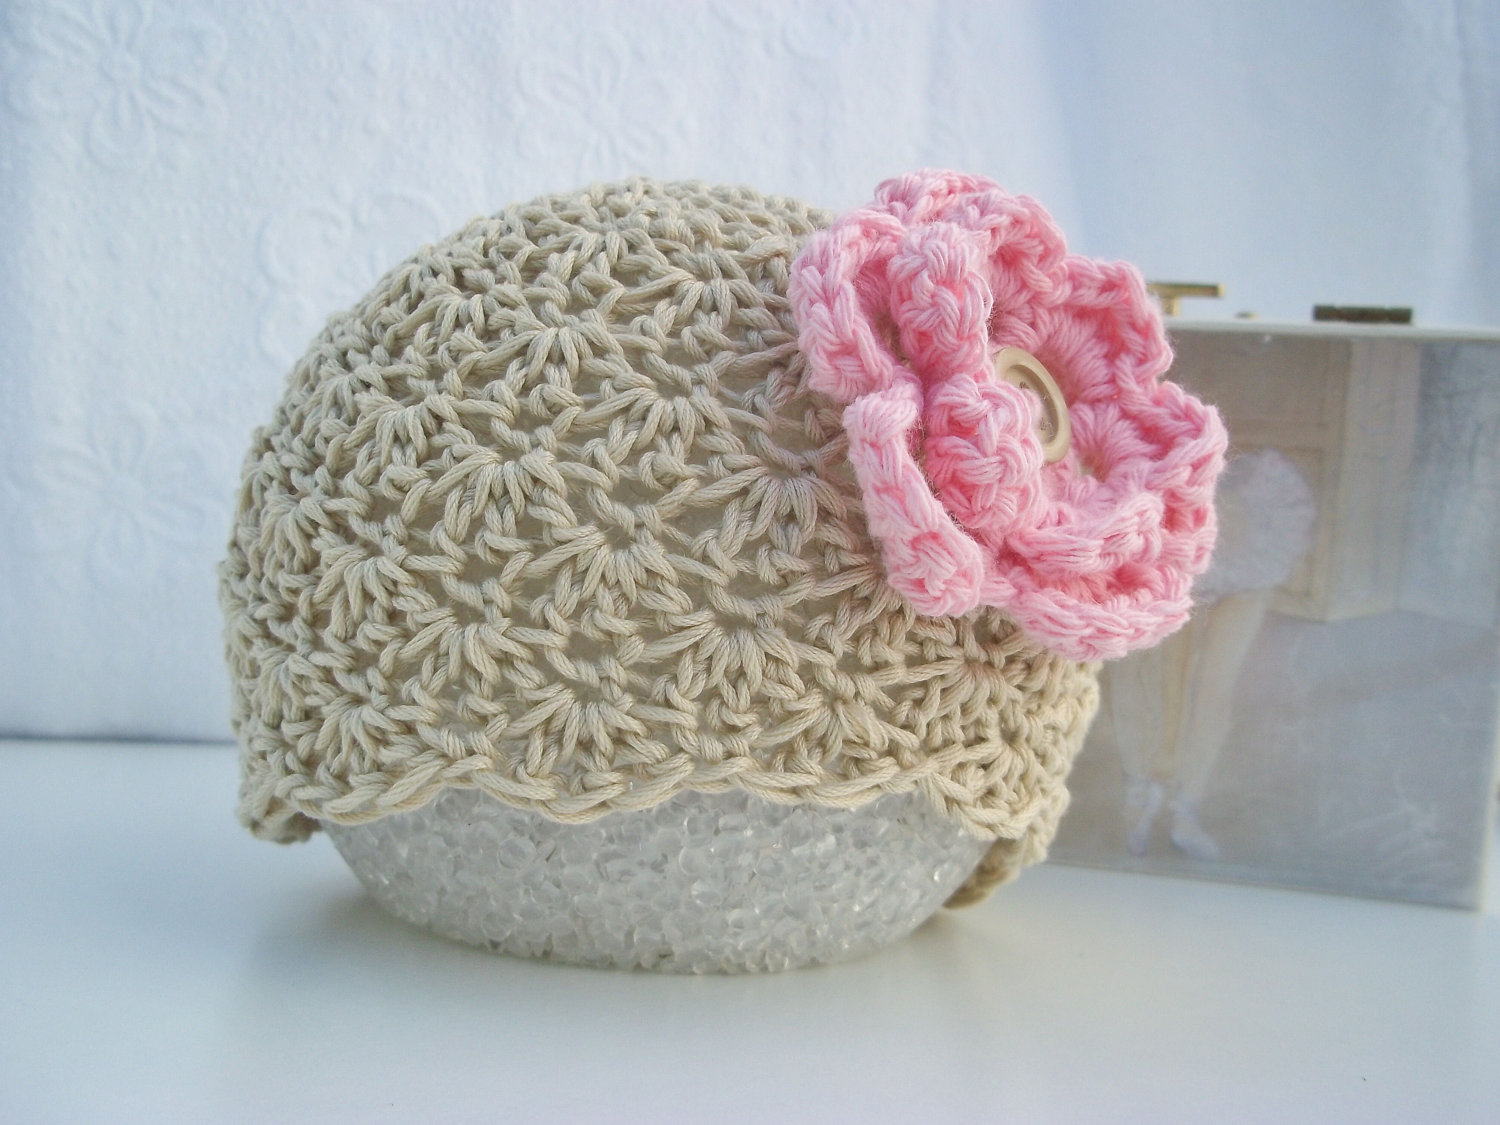 Crochet Patterns For Baby Girl : Crochet Baby Hat - Baby Girl Hat - Newborn Baby Hat ...